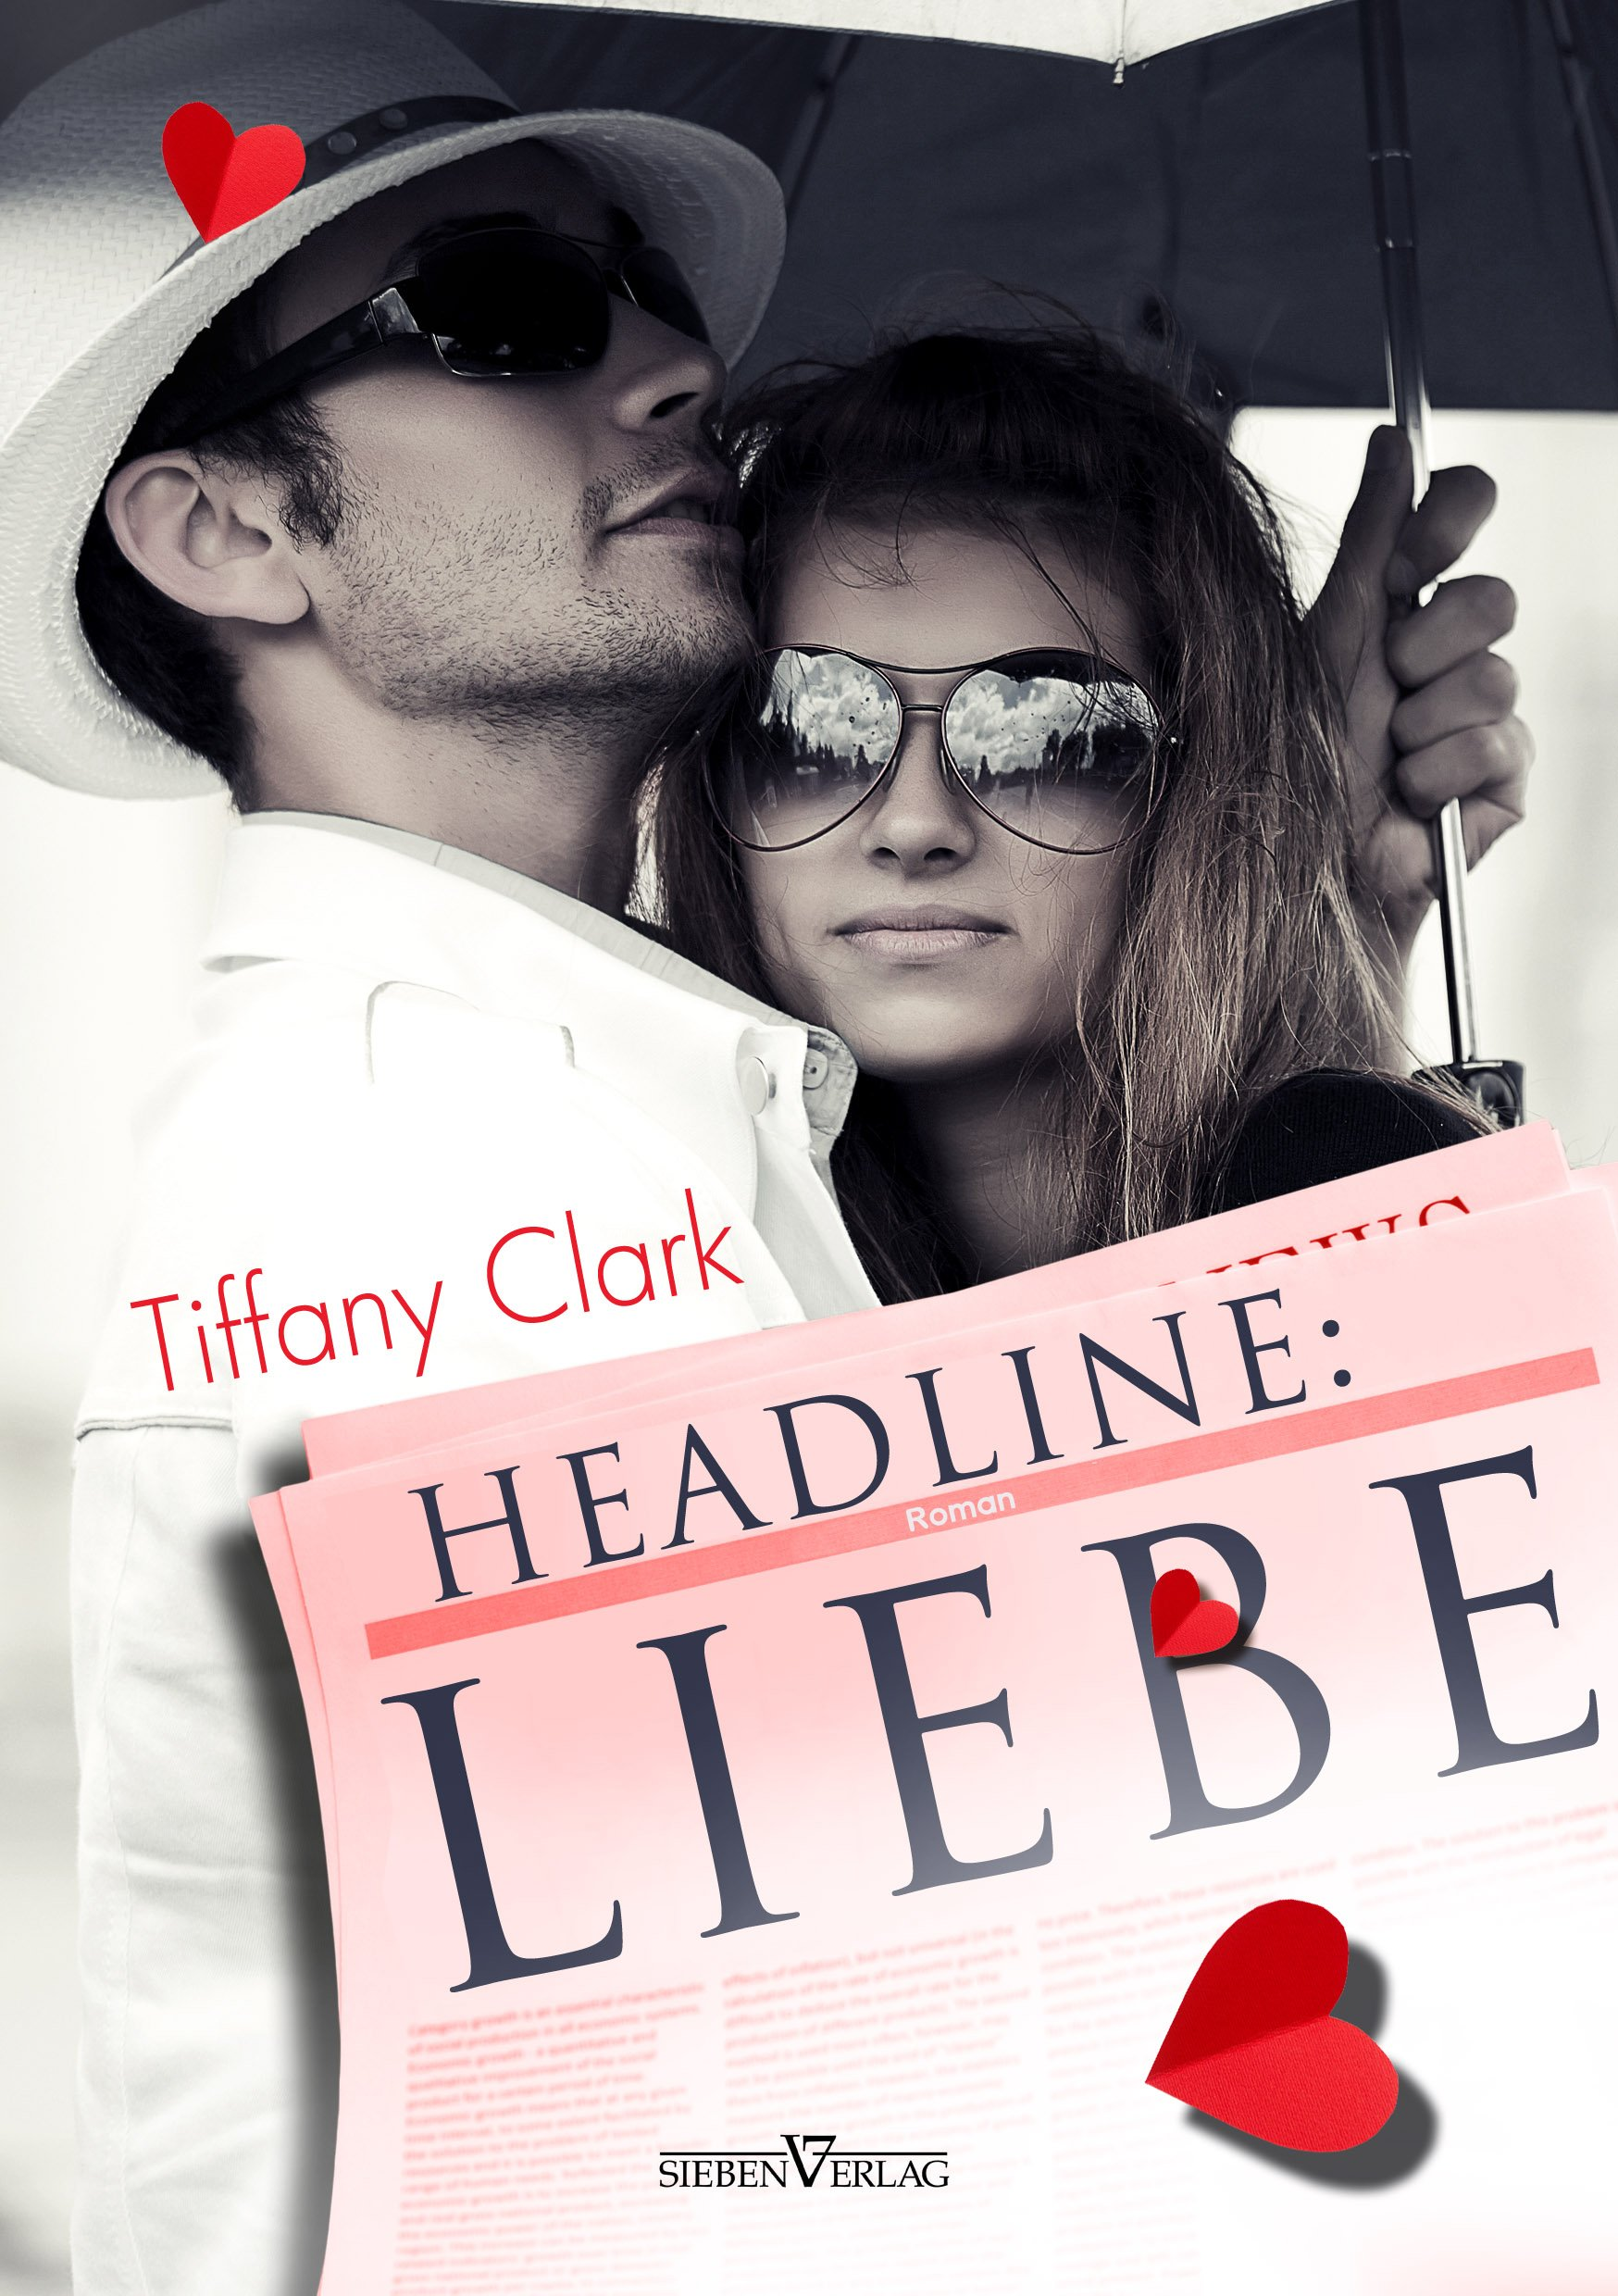 http://www.amazon.de/Headline-Liebe-Tiffany-Clark/dp/3864434025/ref=sr_1_1_bnp_1_per?s=books&ie=UTF8&qid=1409417610&sr=1-1&keywords=Tiffany+Clark